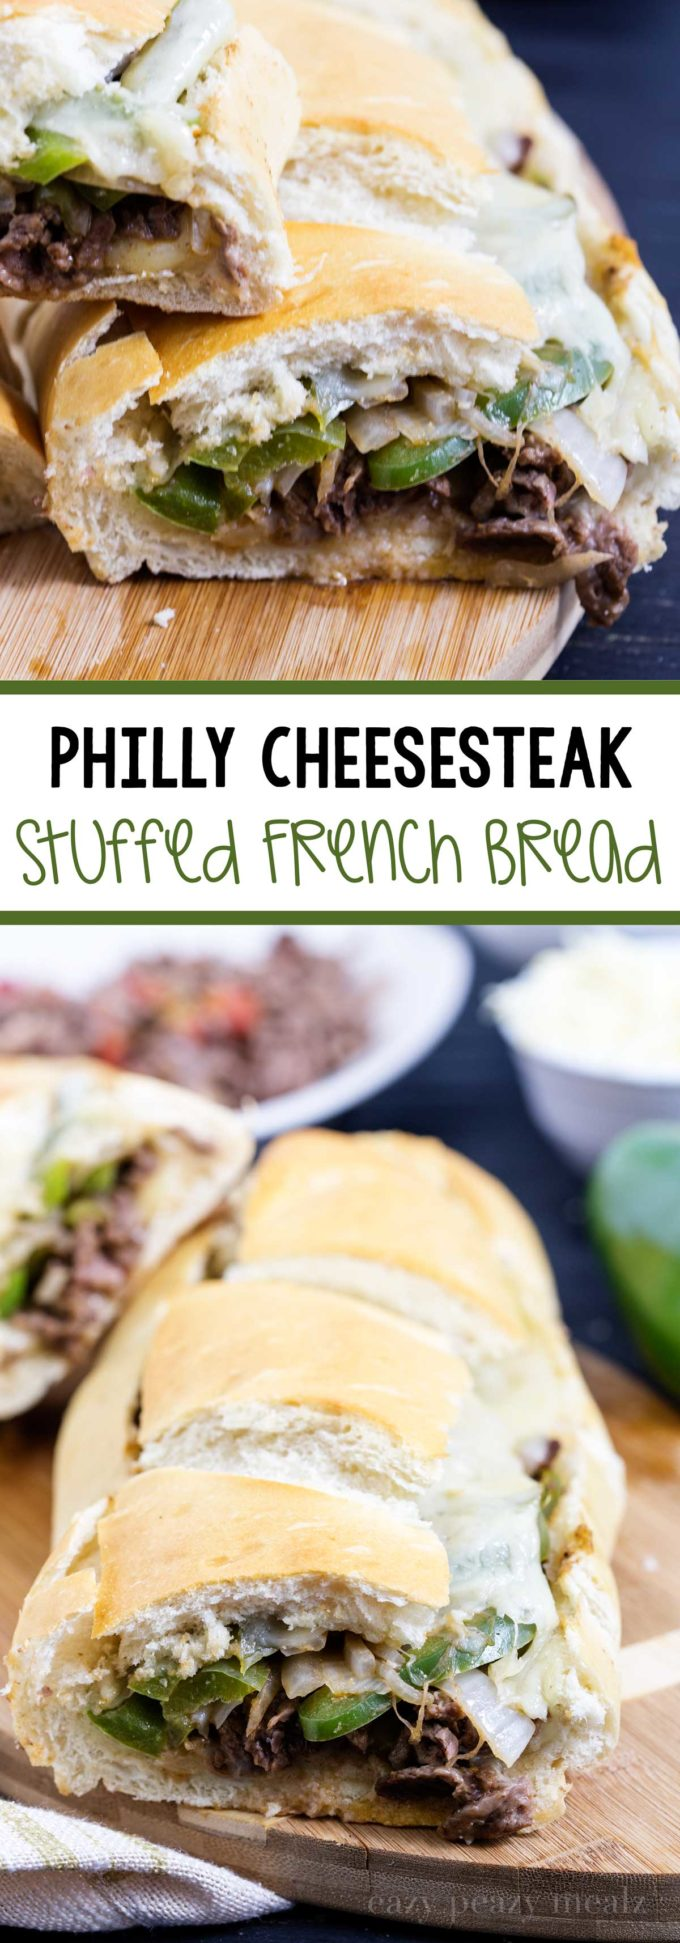 philly-cheesesteak-stuffed-french-bread-pin